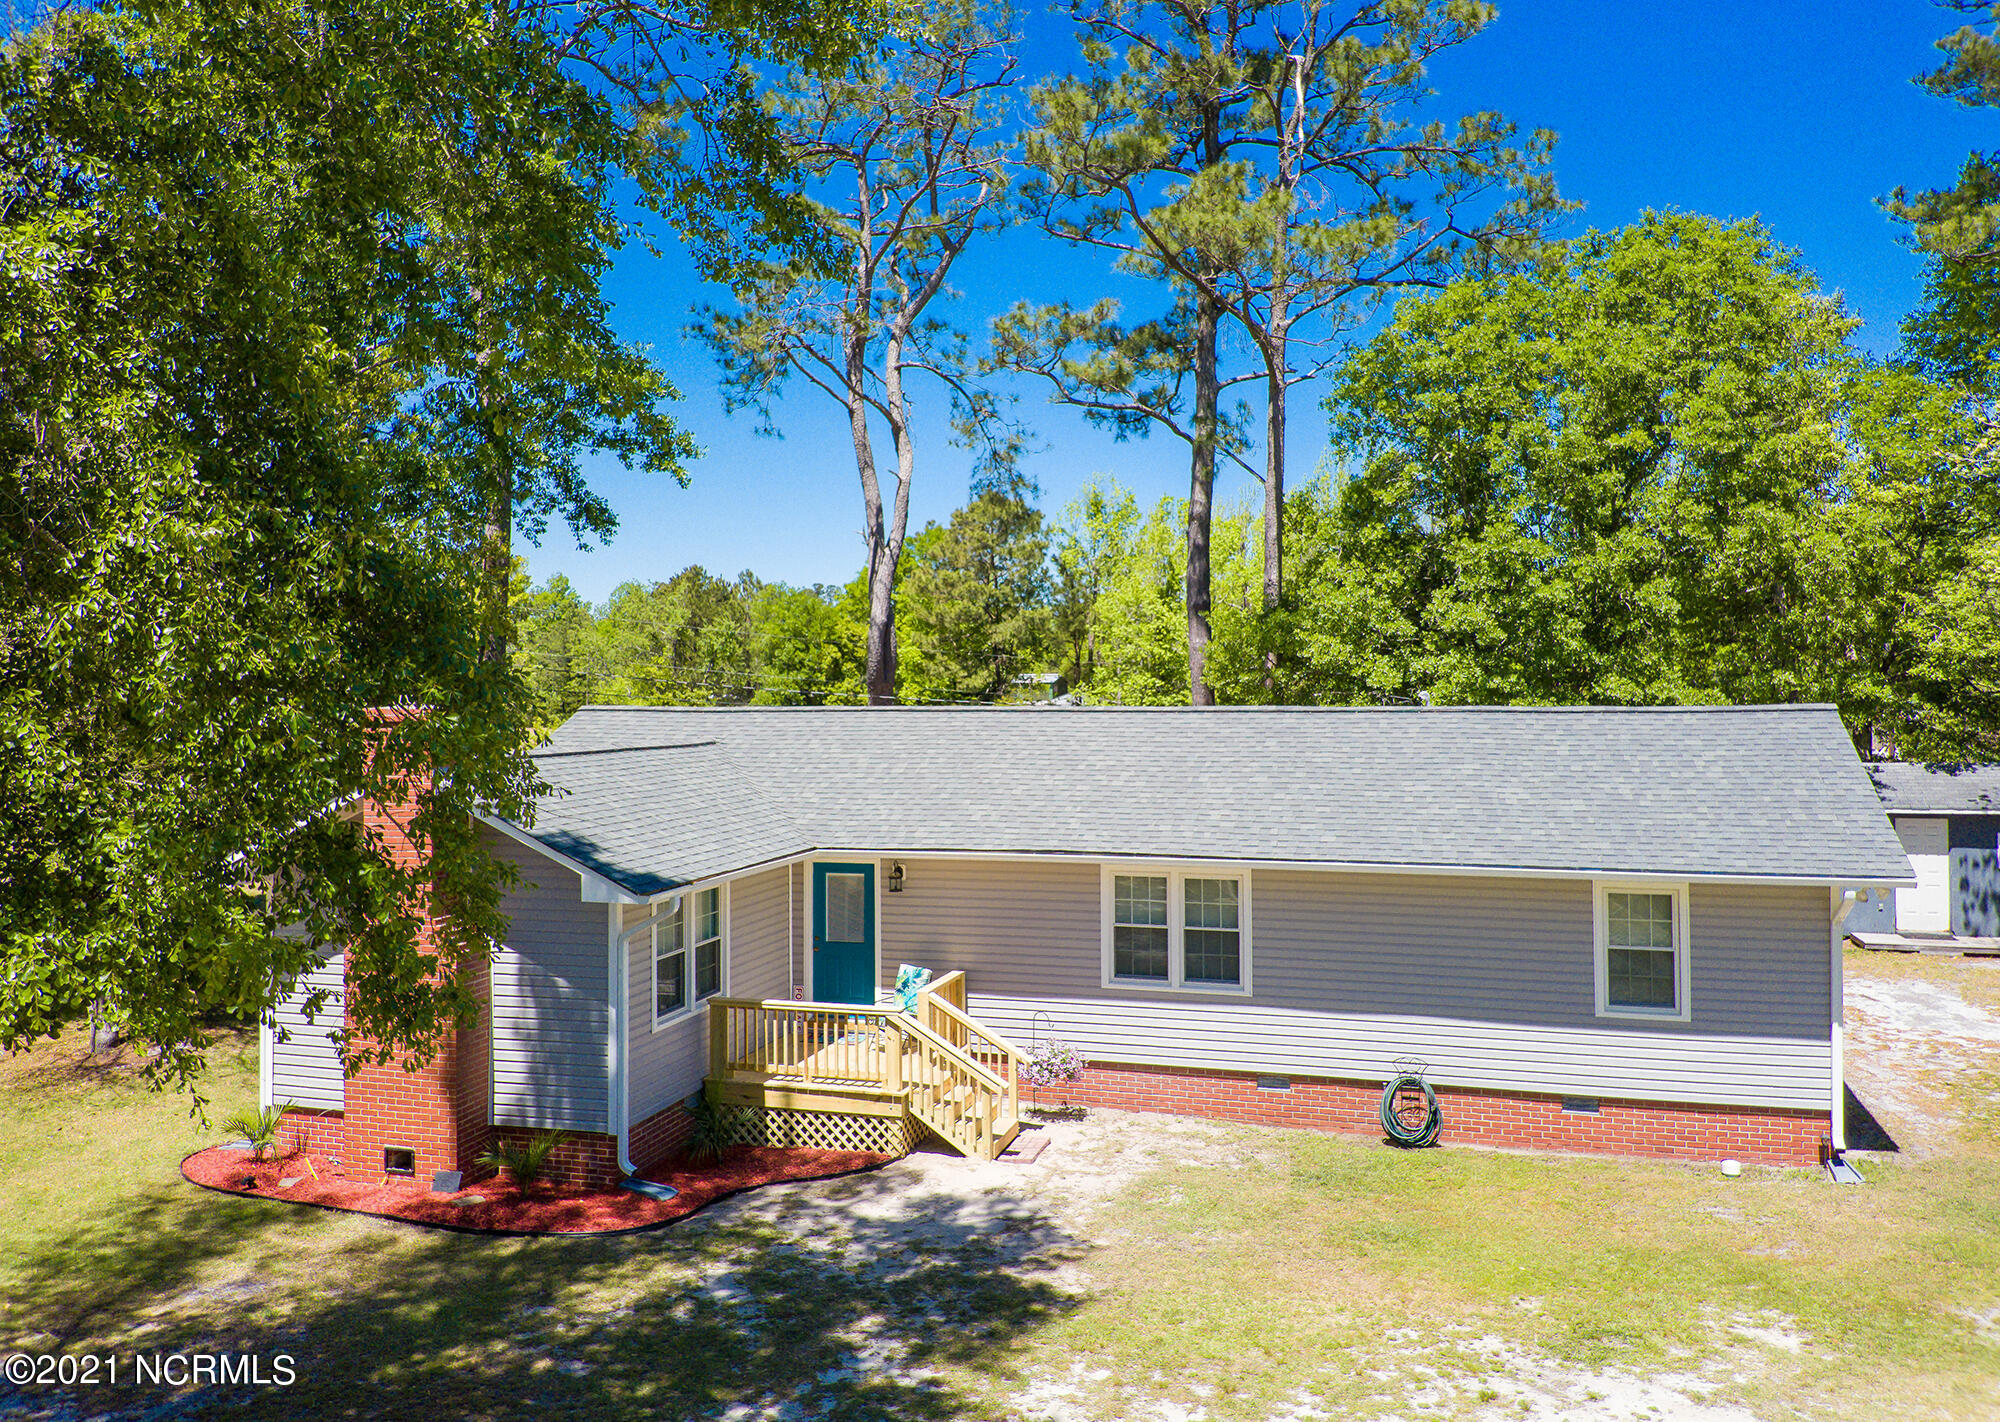 This beautifully updated, 2 bedroom, 2 full bathroom country-coastal home is nestled on just over an acre of private land surrounded by wildlife, gorgeous trees, and is only minutes away from a public boat ramp! Located within easy access to the ICW, residents enjoy cruising nearby coastal destinations in the area enjoying year-round boating conditions. The property is centrally located to Downtown Swansboro, Camp Lejeune, and Emerald Isle. No HOA or city taxes!  The spacious kitchen features a large center island that is perfect for entertaining guests! A large covered back porch and fire pit welcome you outside in addition to 3 out buildings including a multi-purpose shed up fitted with electricity to allow use for tinkering with tools/etc., a detached carport, and a small shed - perfect for additional storage.  The owners are currently working on rebuilding the front porch and will update photos upon completion. Owners have also recently installed a partial wood rear fence for additional privacy. New 40 yr Architectural Roof, new HVAC unit, all new vinyl windows, Victorian Grey Dutch Lap Vinyl Siding, 5'' seamless gutters. Master bath includes tiled walk-in shower, new vanity, ceramic tile flooring, and new fixtures just to name a few. New wood laminate flooring in Dining, Foyer, and Living Room. All new Luxury Vinyl in Master Bath, Guest Bath, Kitchen, and Bedrooms.  You will not want to miss out on the opportunity to call this special property home! This one won't last long folks!